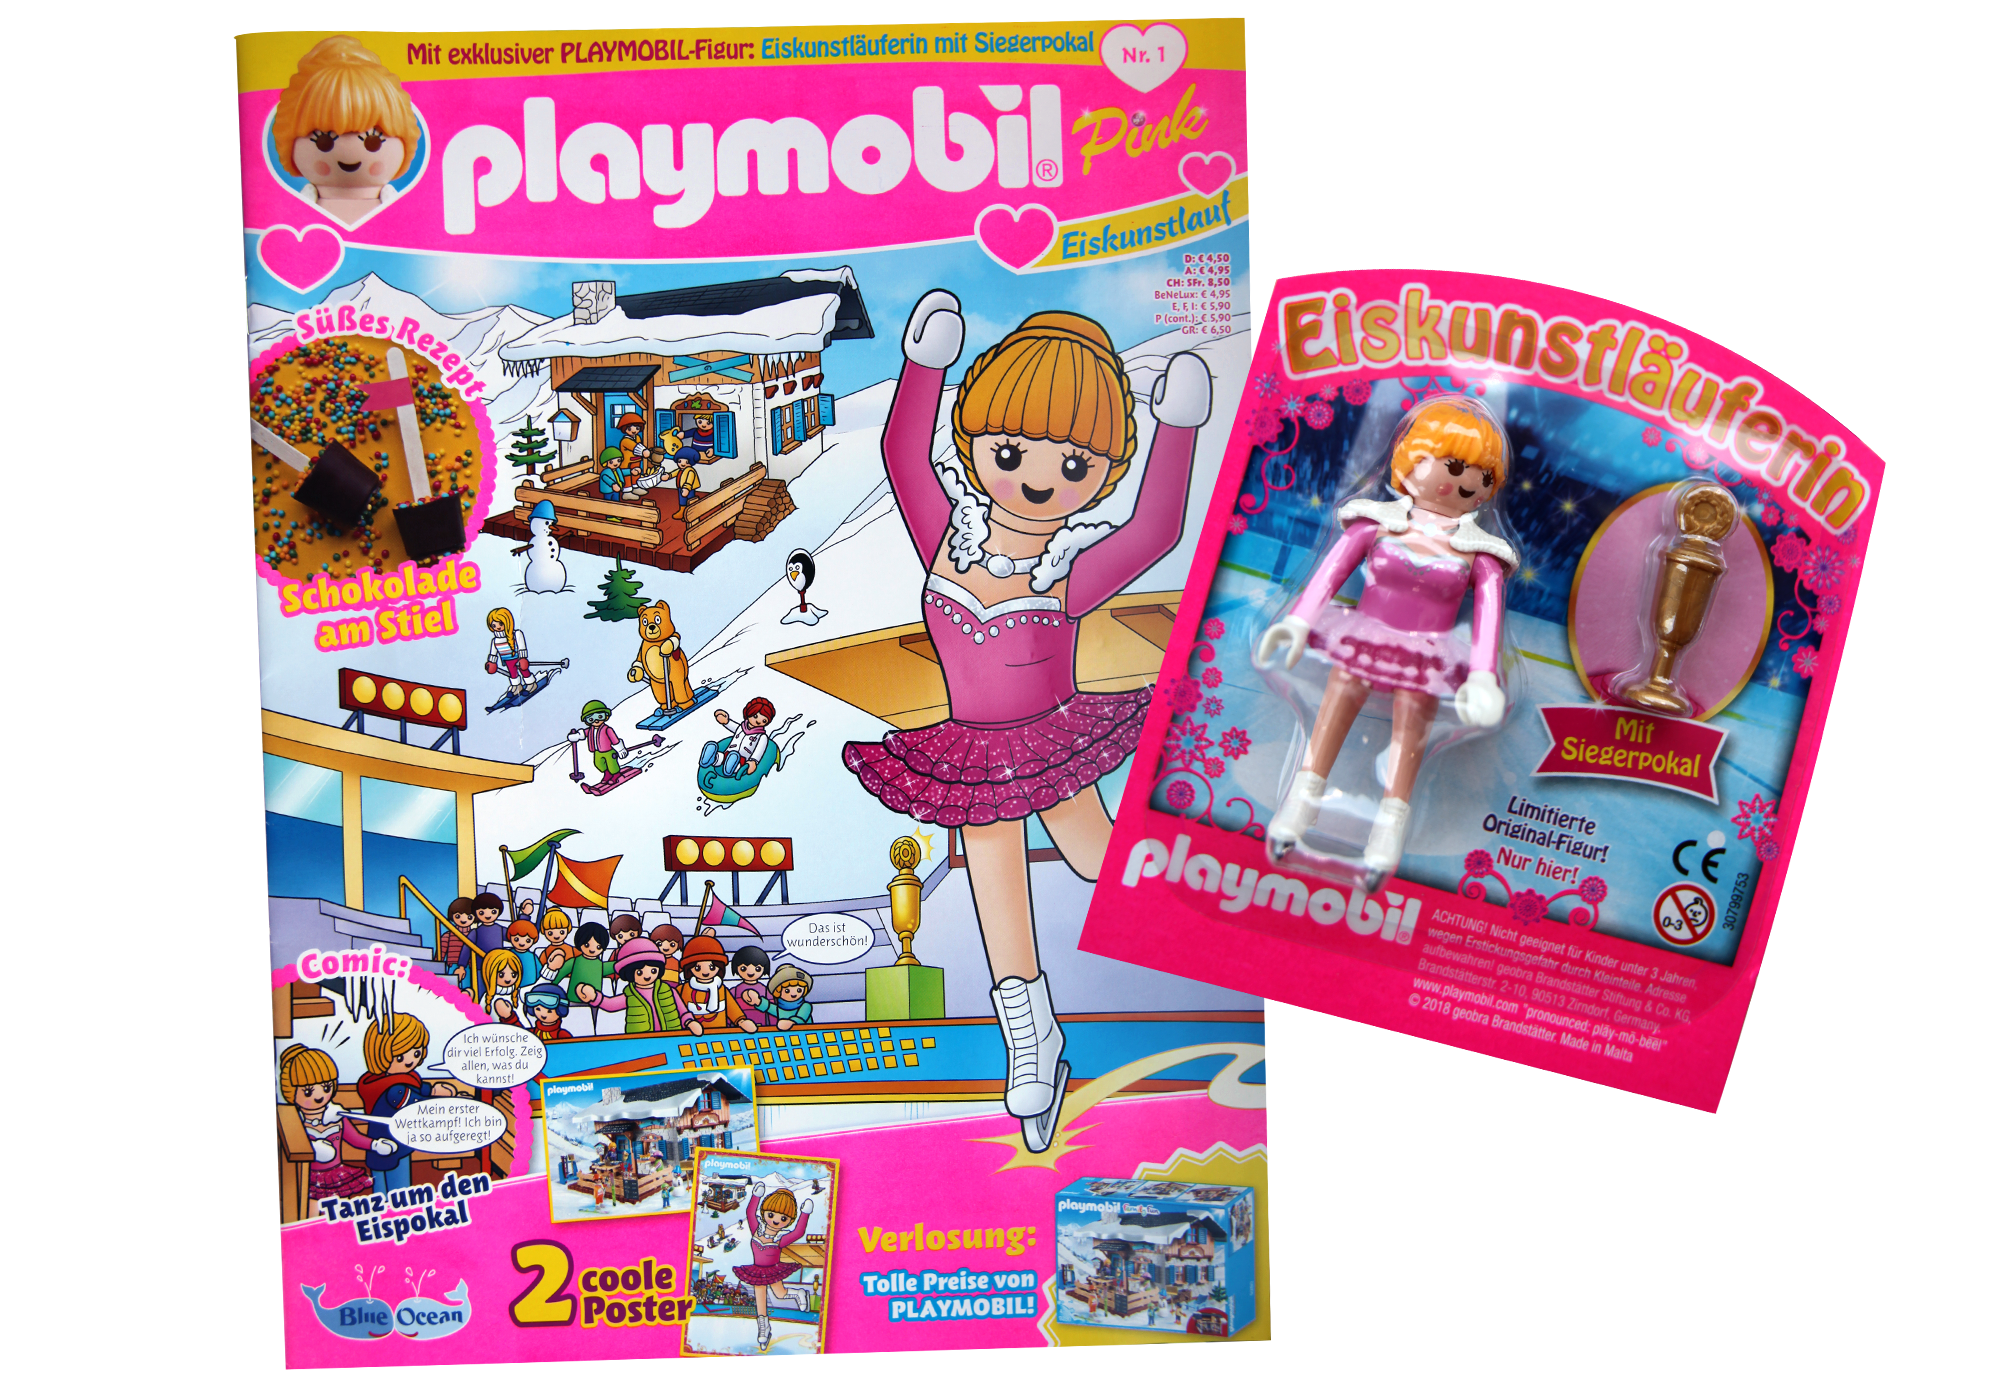 http://media.playmobil.com/i/playmobil/80601_product_detail